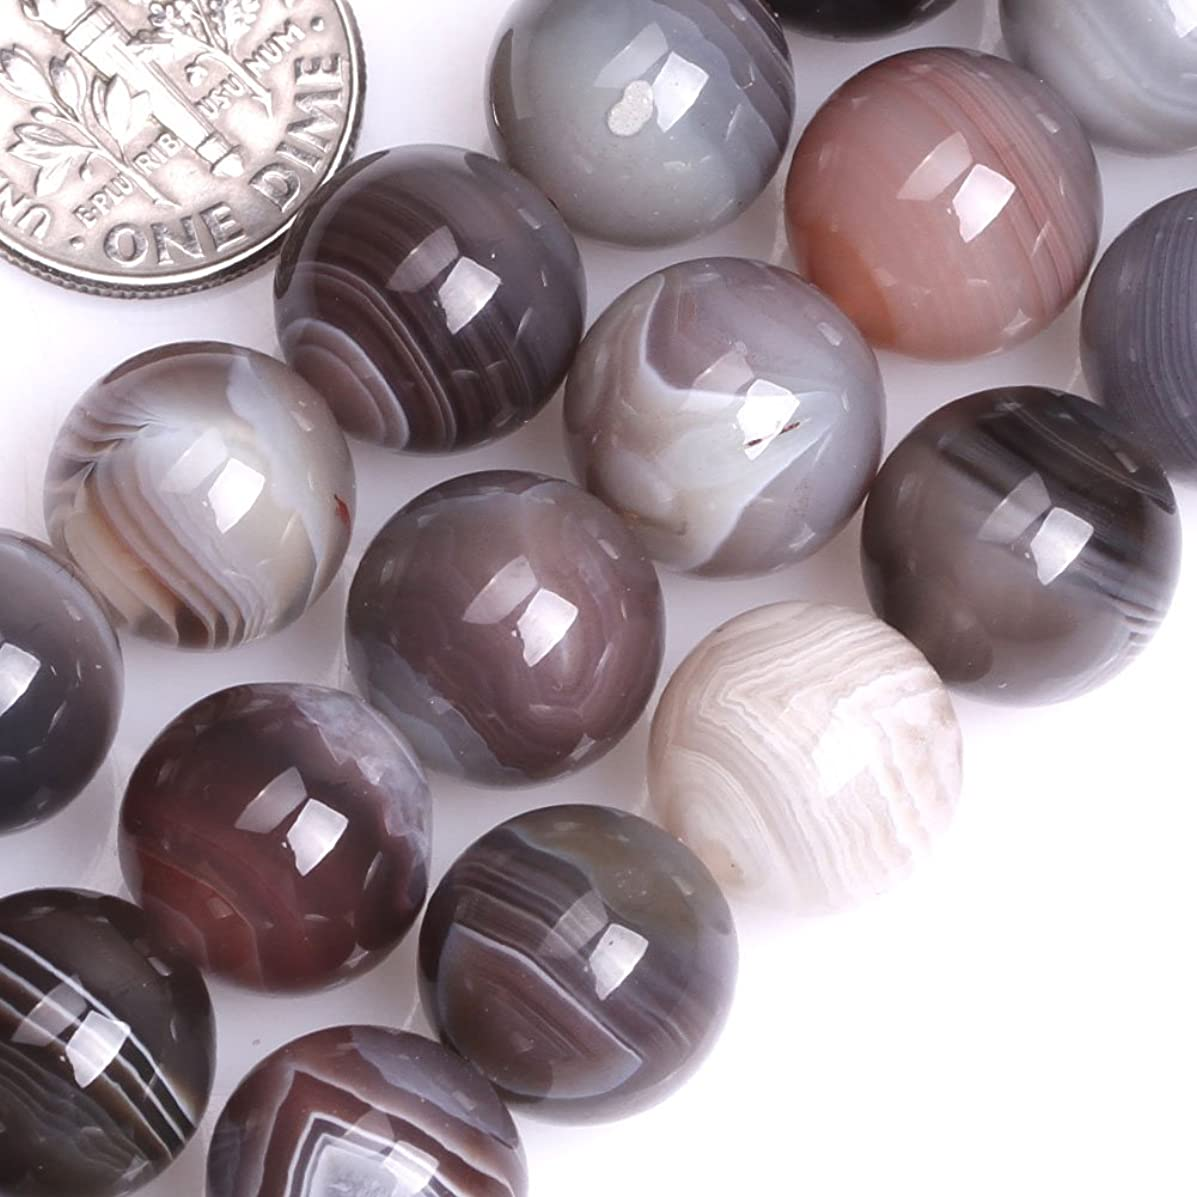 GEM-inside Botswana Agate Genstone Loose Beads Natural 12mm Round Crystal Energy Stone Power For Jewelry Making 15